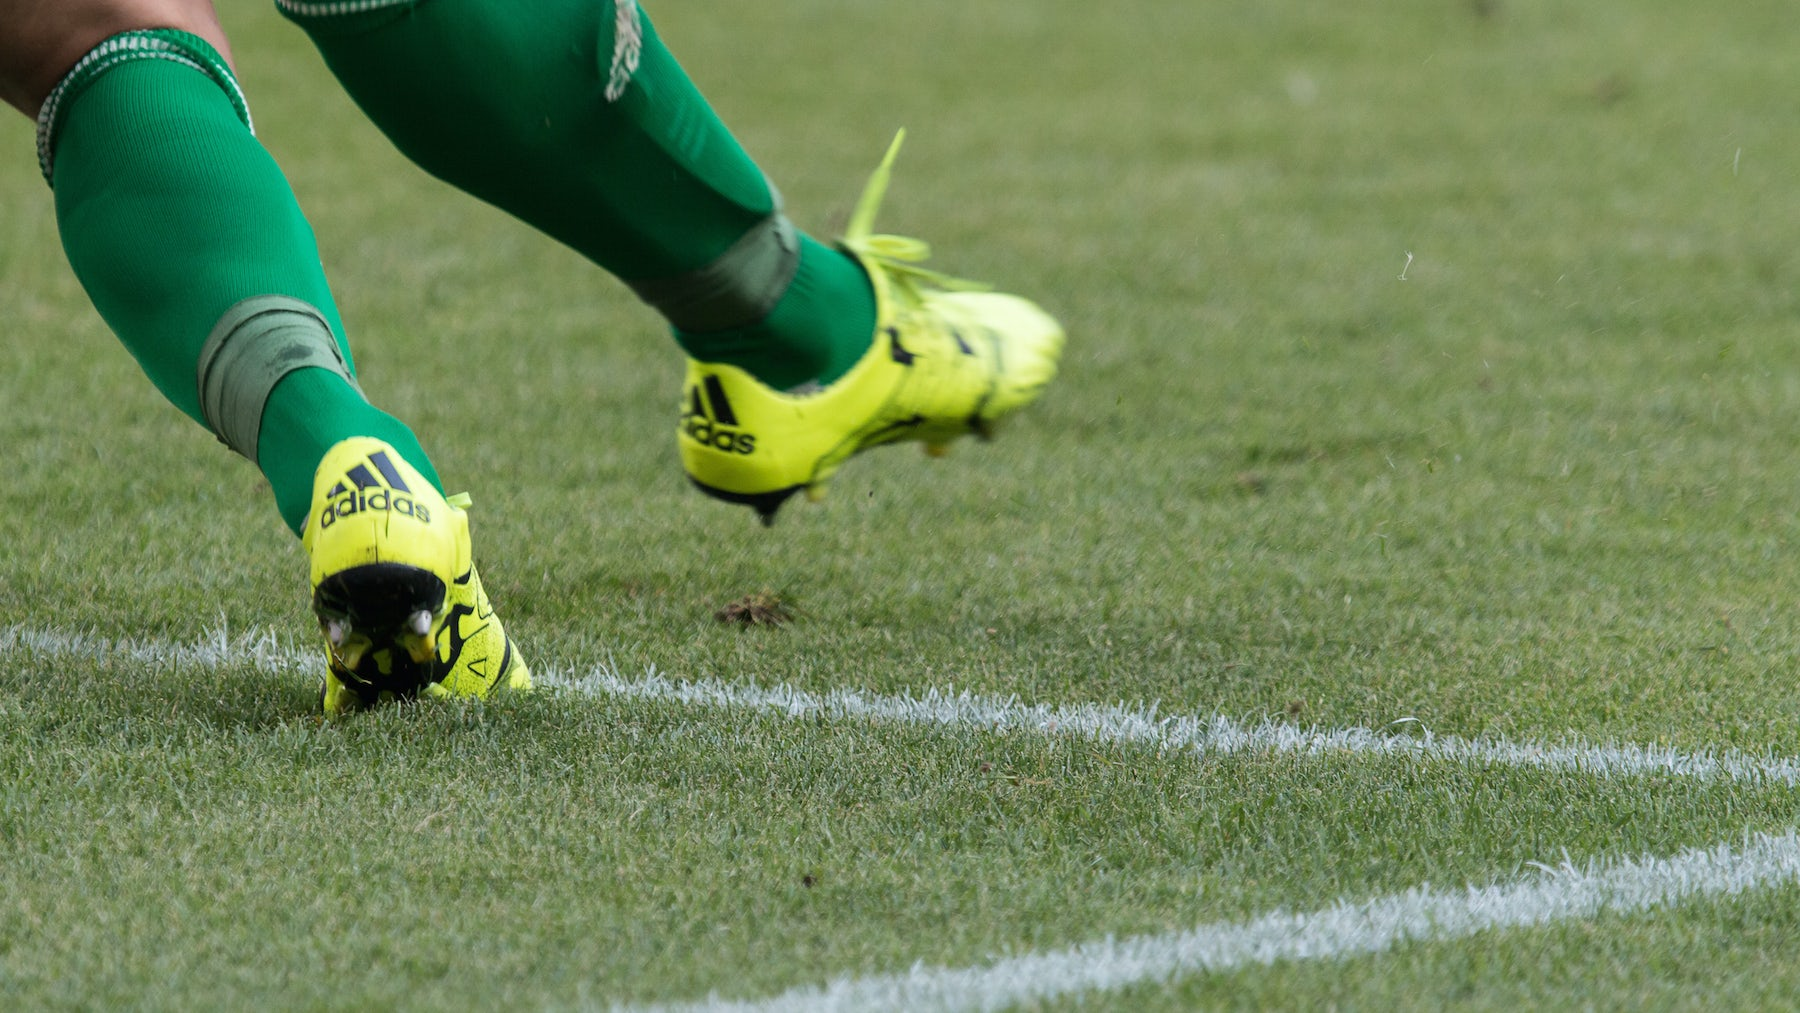 Adidas Relies On Stars Not Soccer Teams To Sell Product